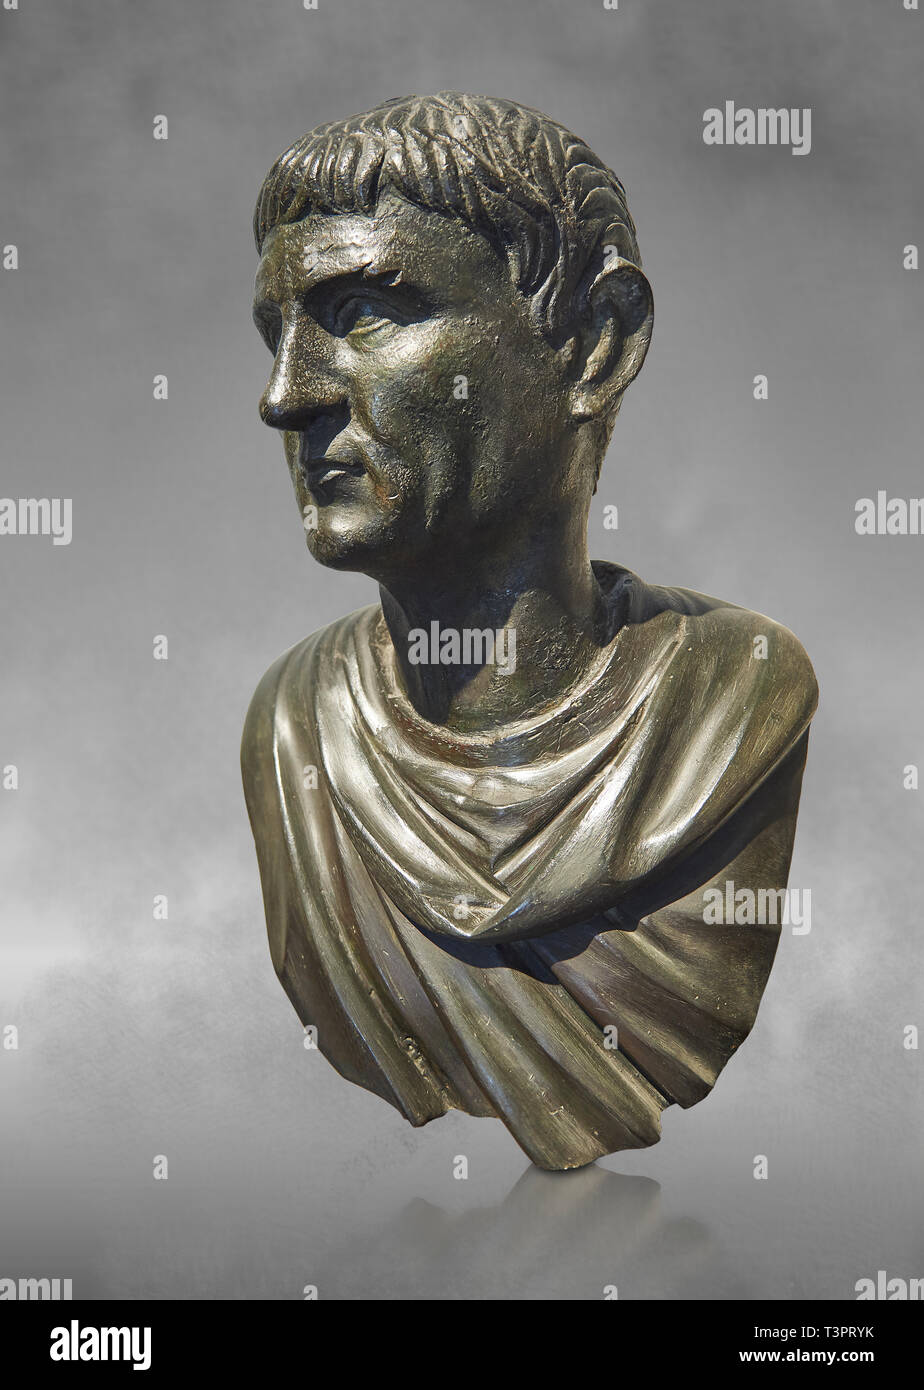 Roman Bronze sculpture bust known as 'Sylla' from the tablinium of the Villa of the Papyri in Herculaneum, Museum of Archaeology, Italy, grey art back - Stock Image